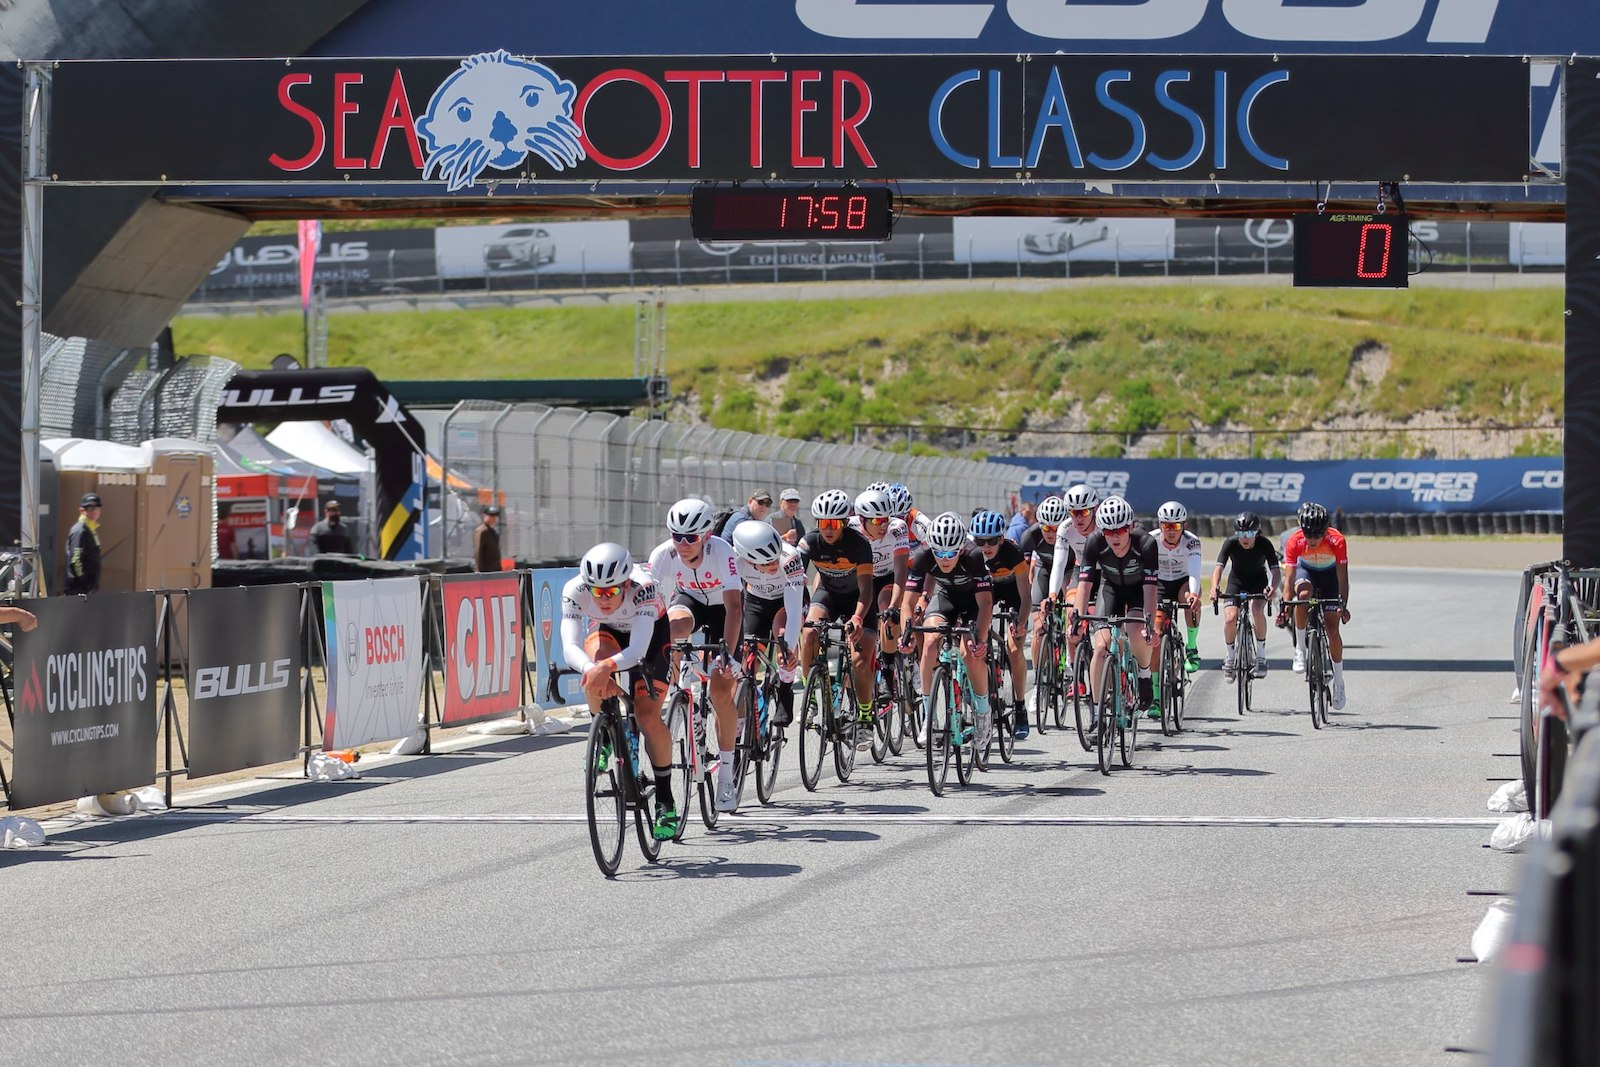 Sea Otter Classic 2019 road cycling event